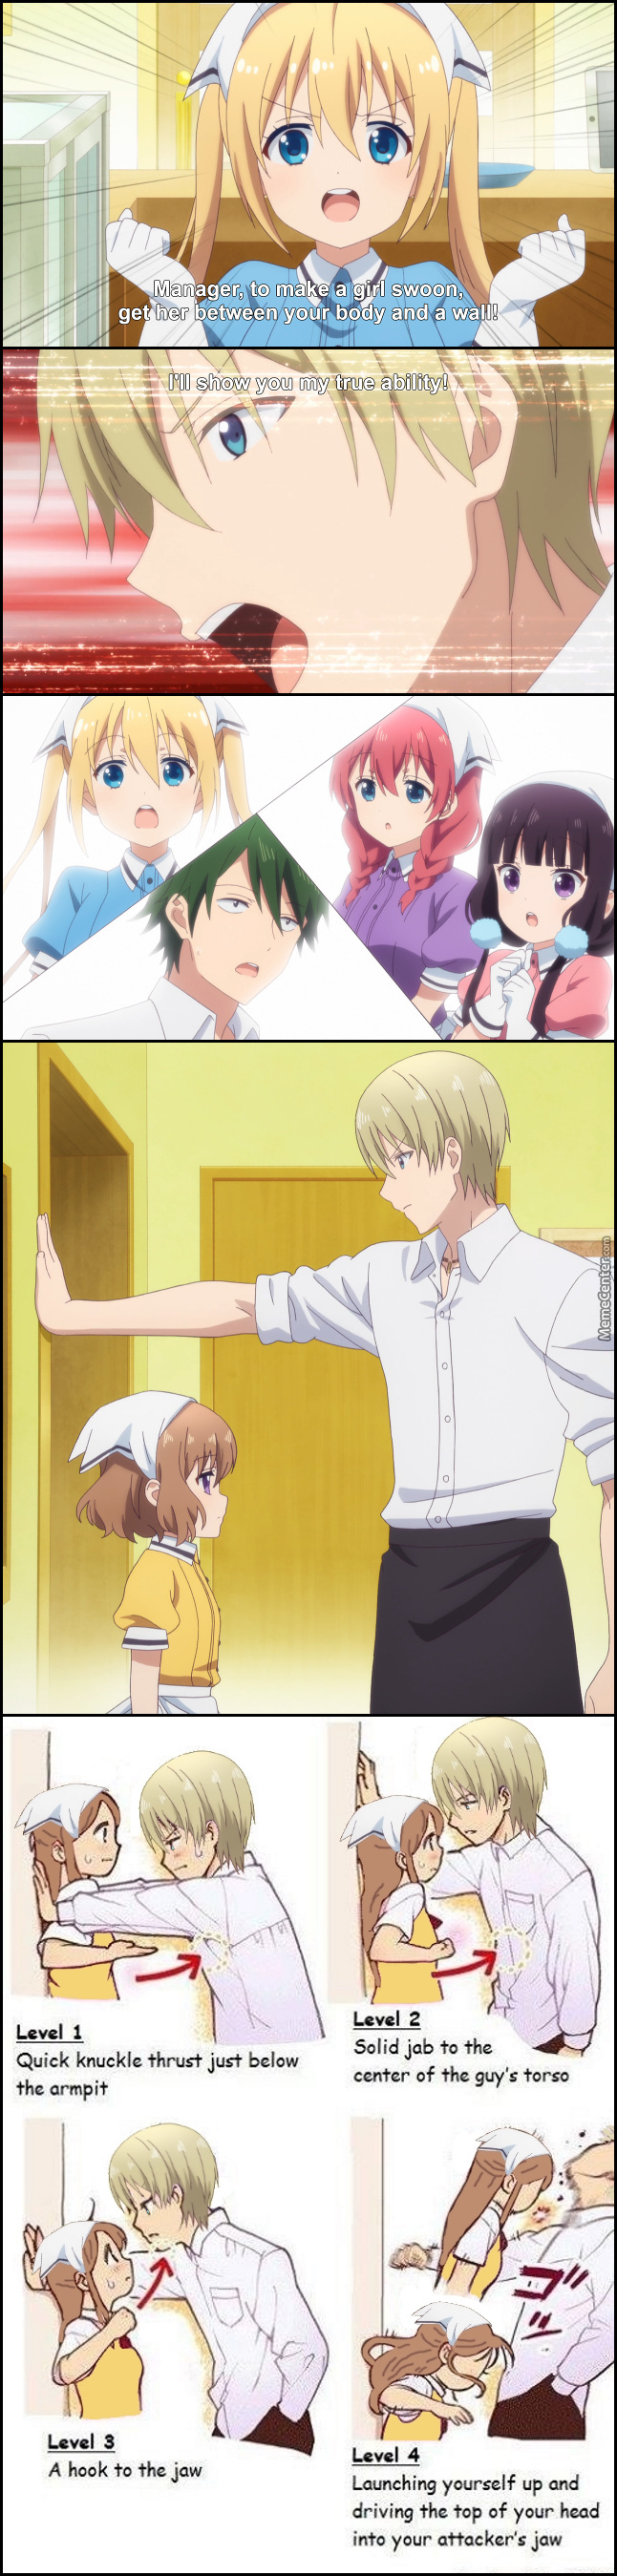 Small Problems - Blend S